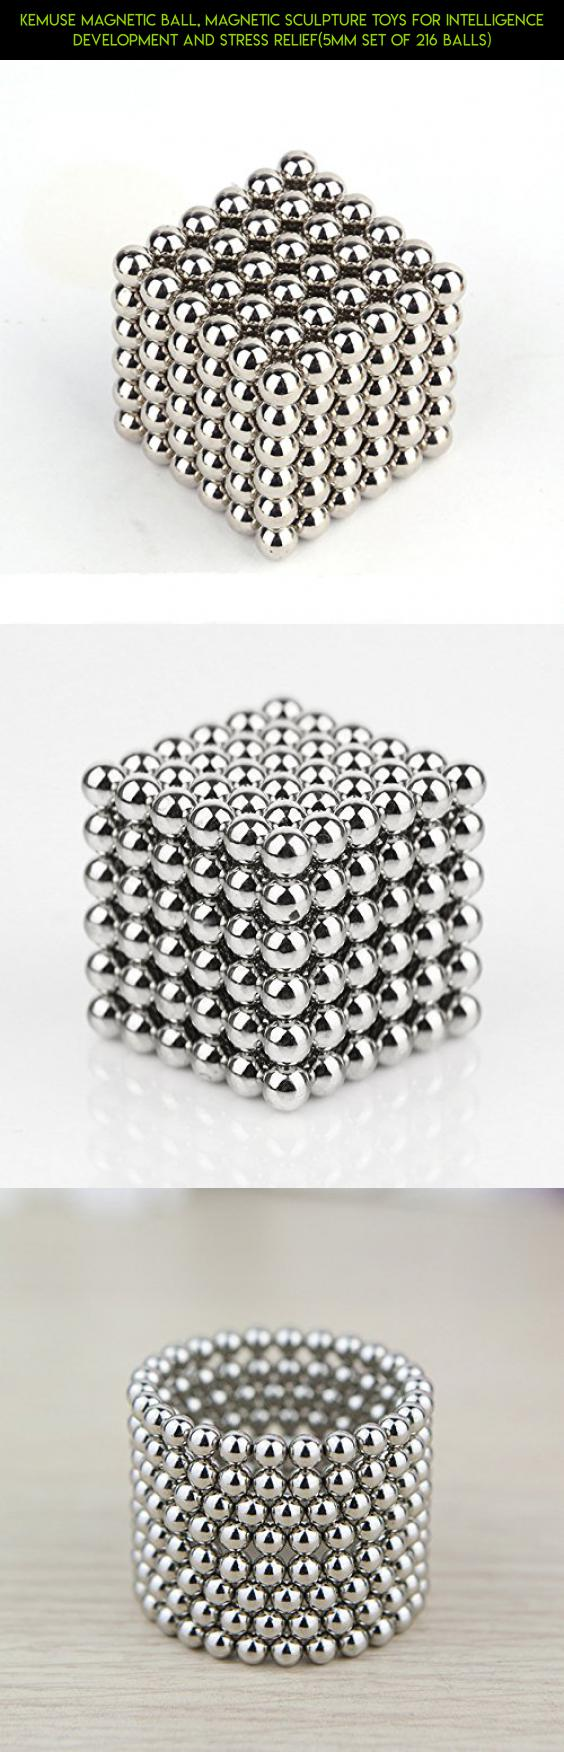 5MM Set of 216 Balls 5mm-Multicolor Magnetic Sculpture Toys for Intelligence Development and Stress Relief Toys Magnetic Ball